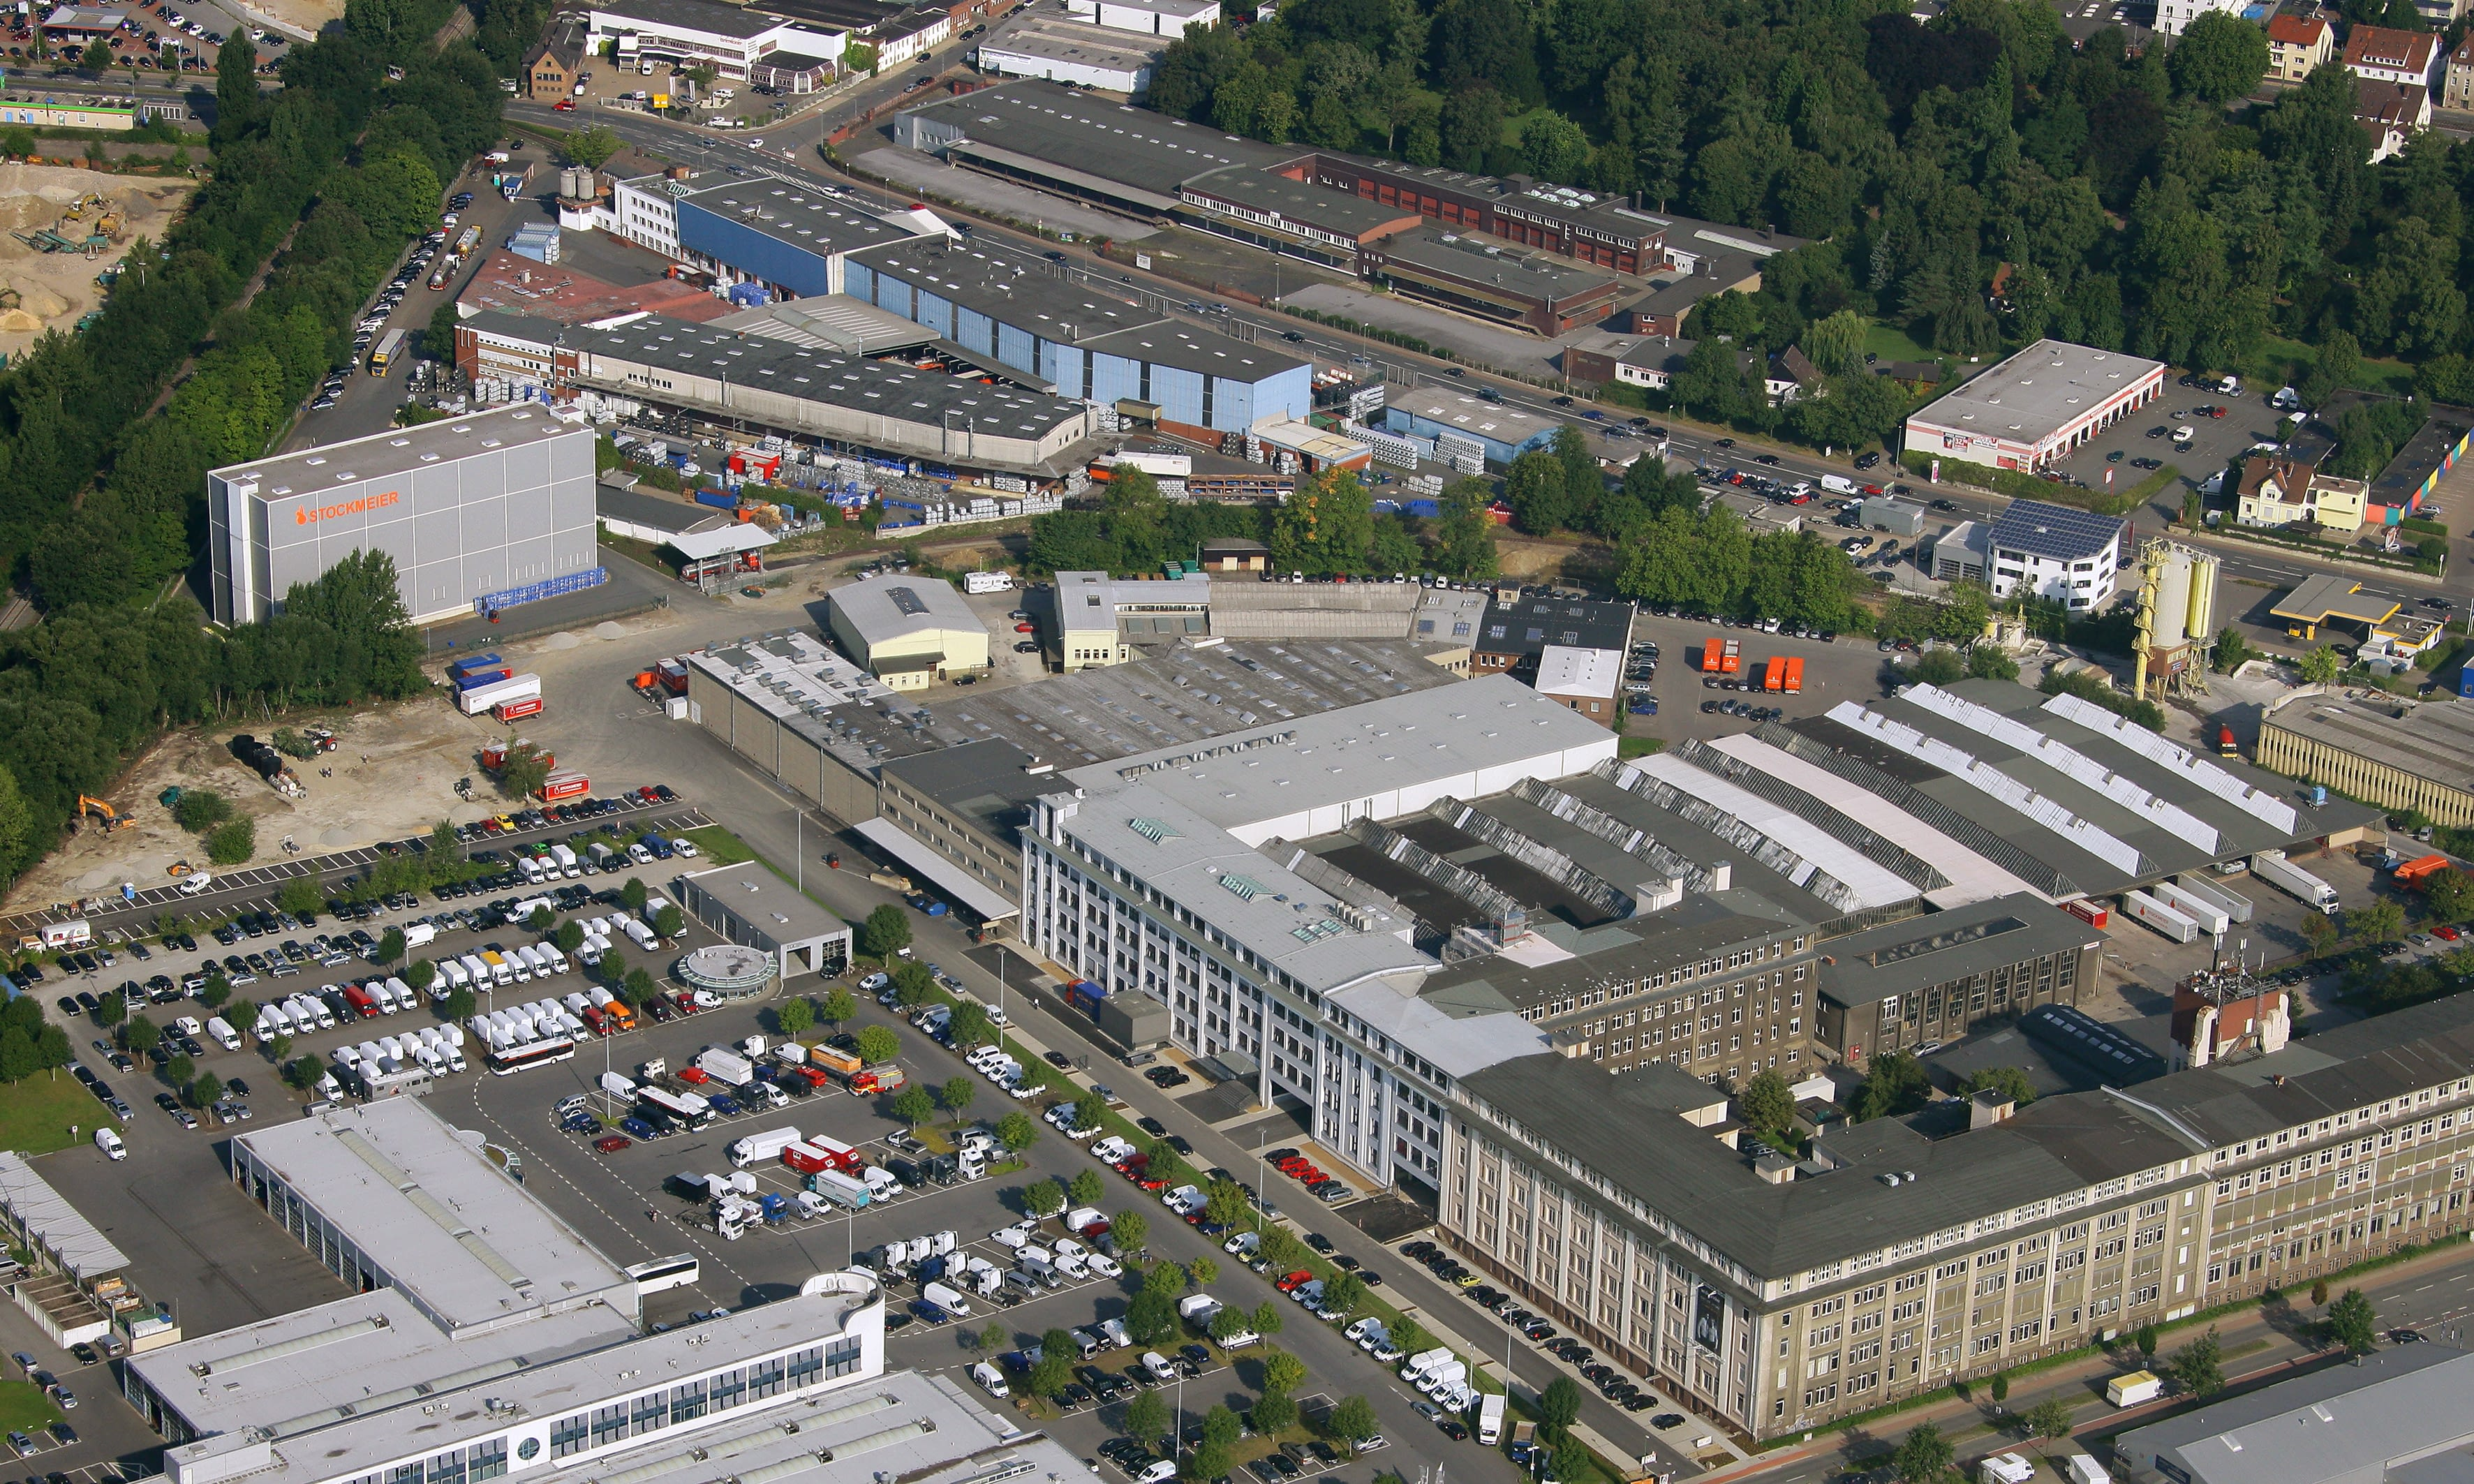 Aerial view of the STOCKMEIER Bielefeld plant